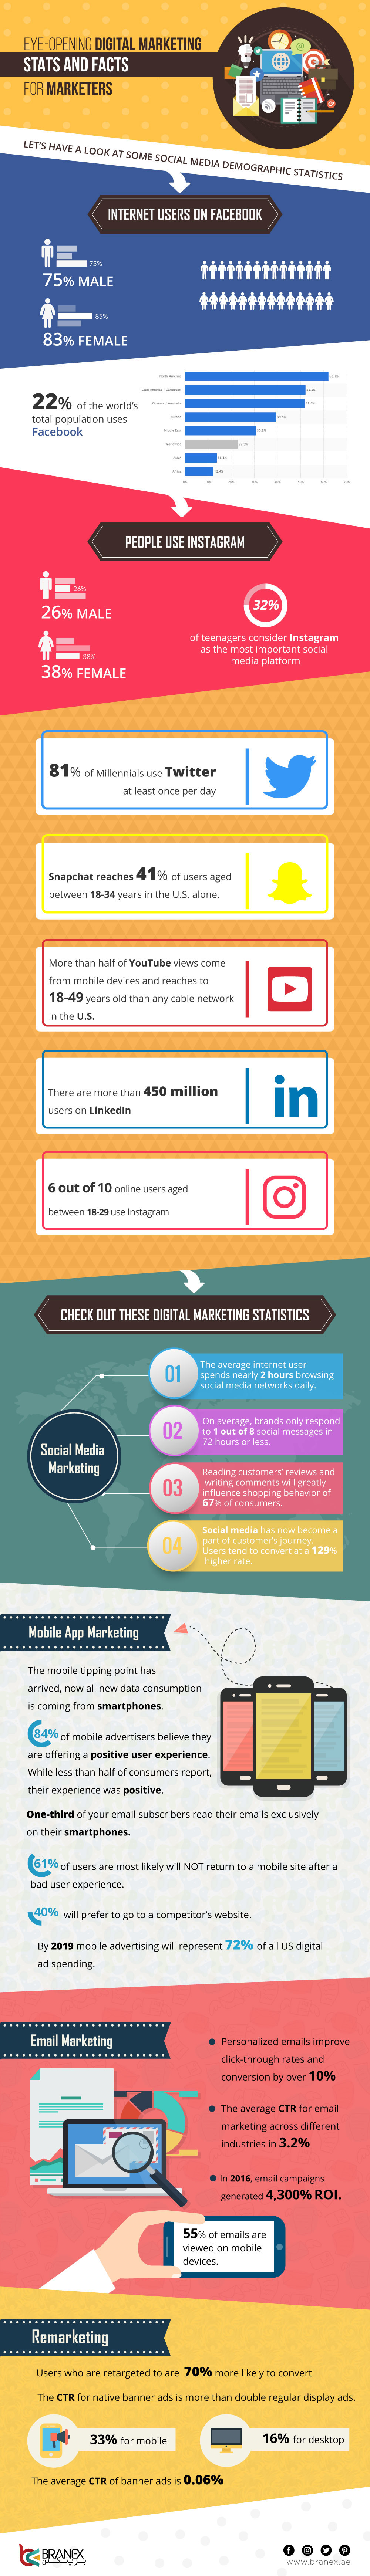 Digital Marketing Stats and Facts for Marketers